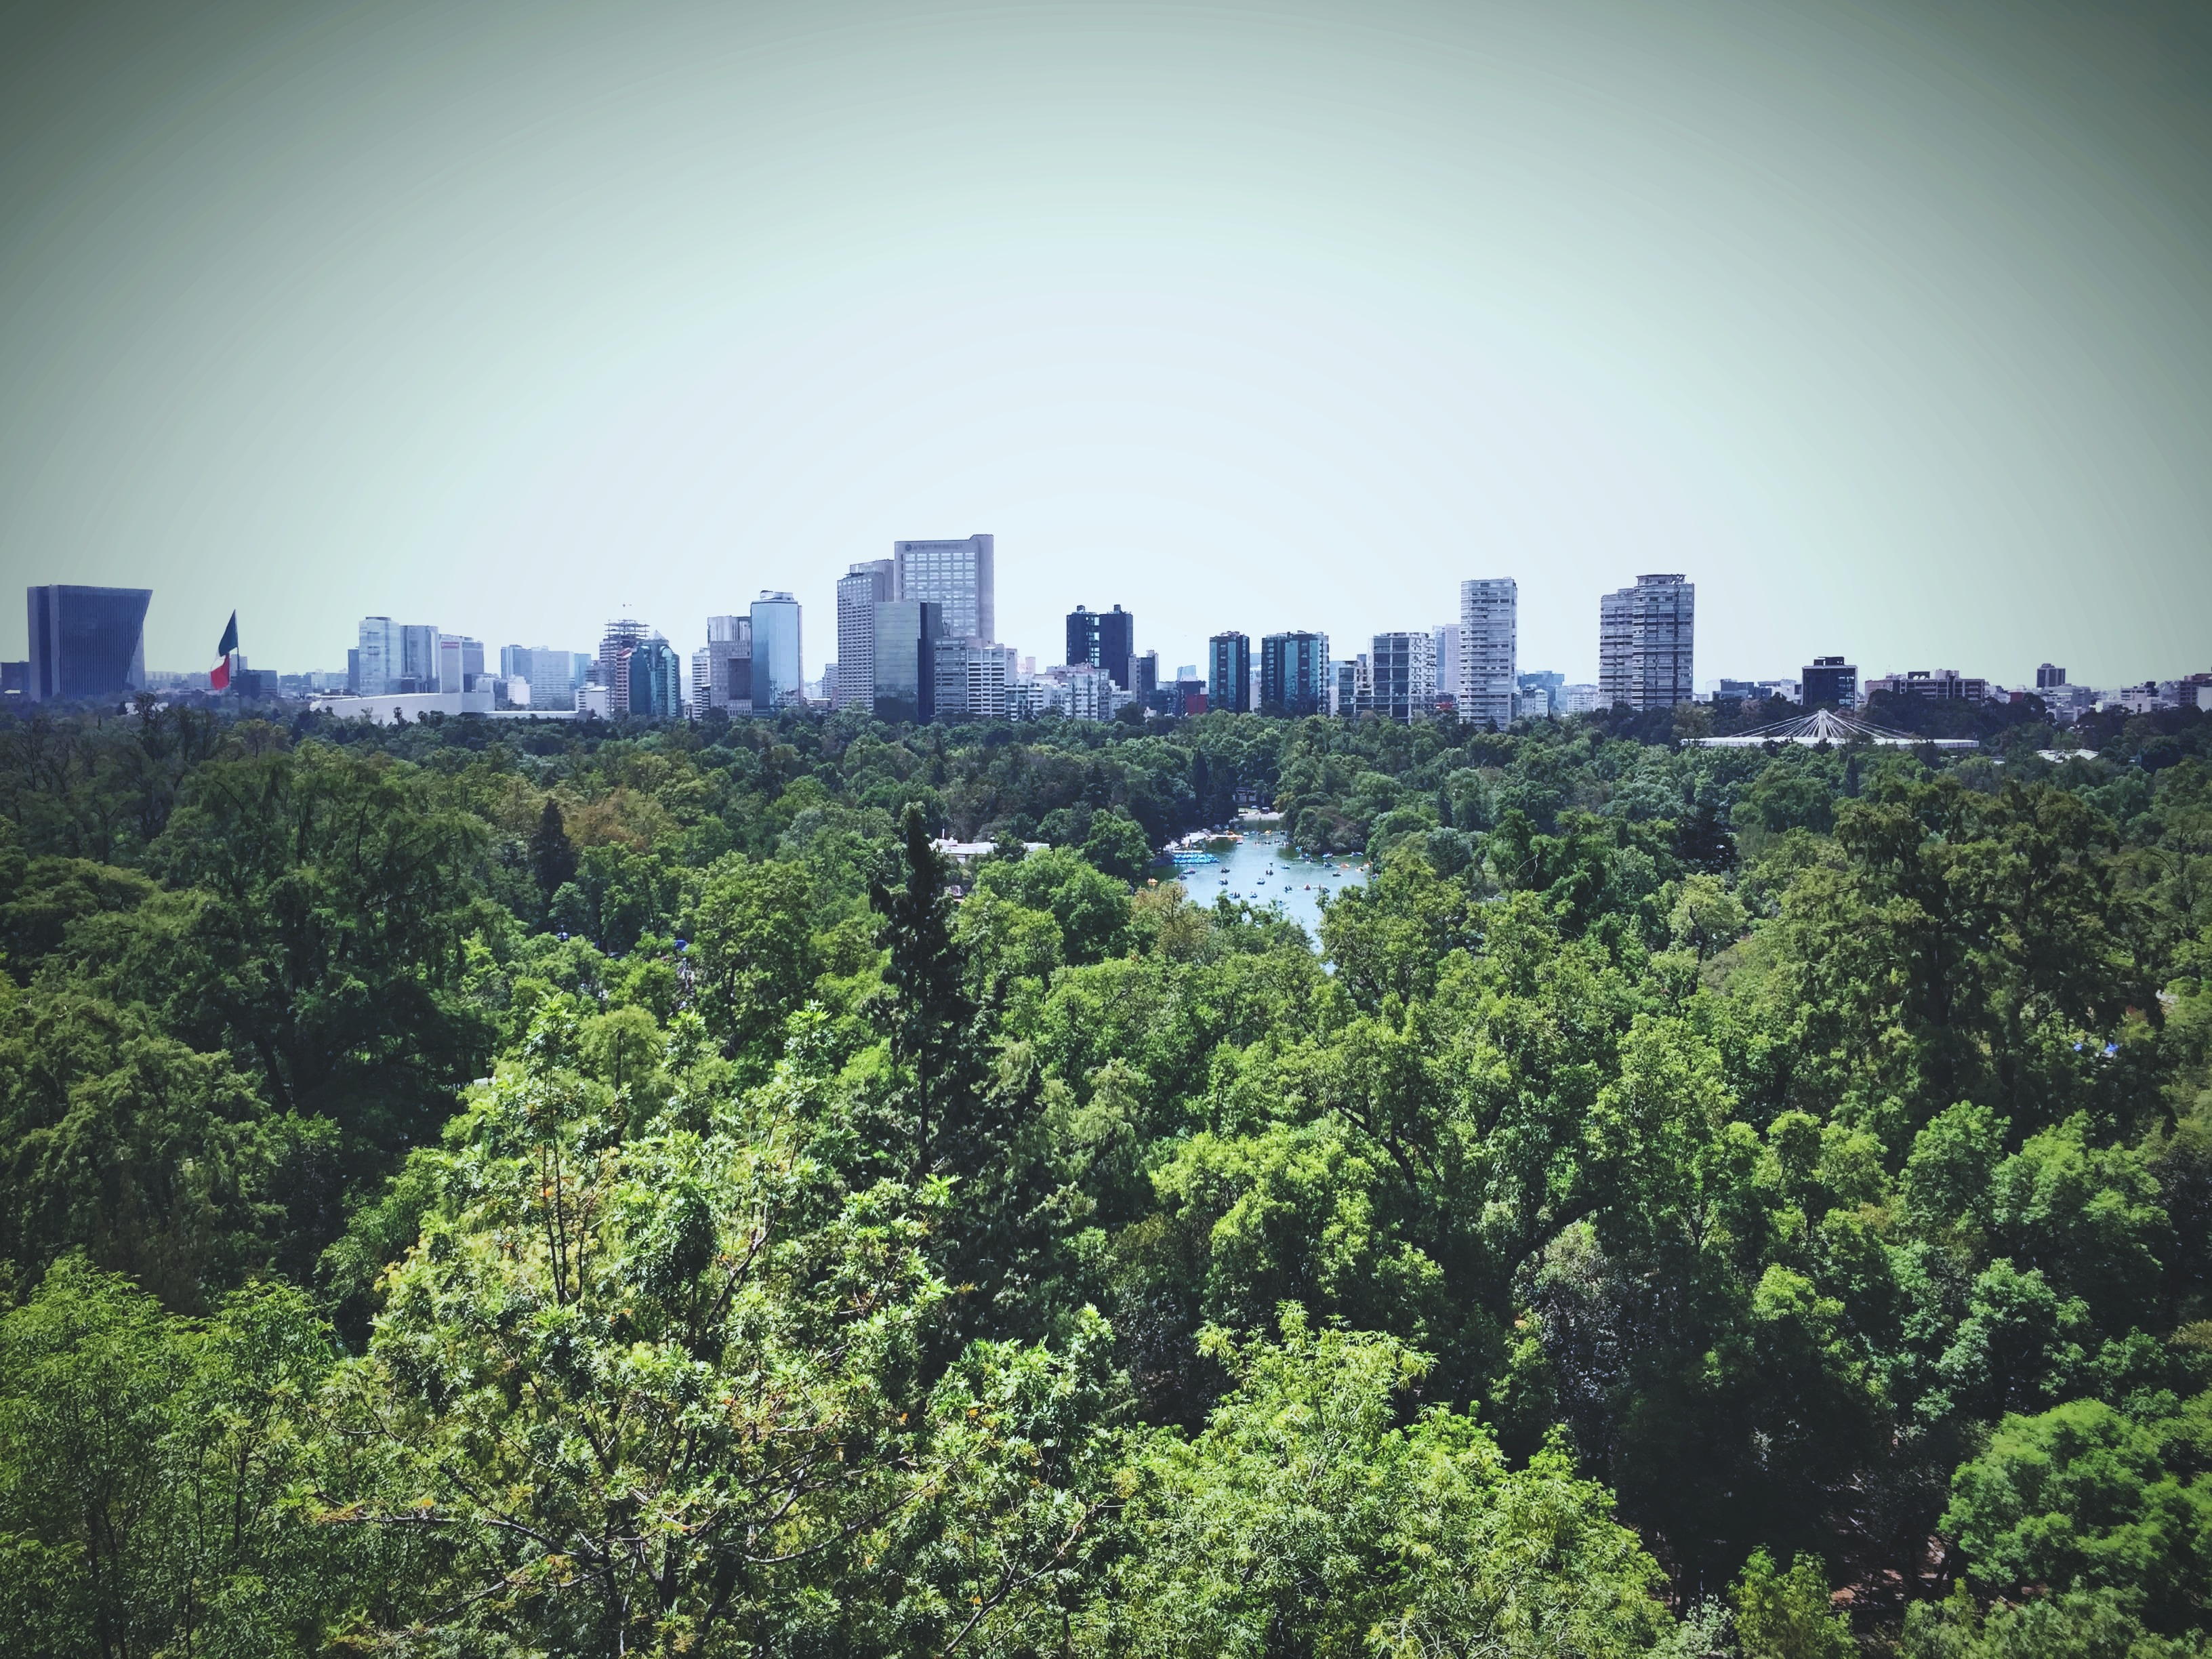 Chapultepec Park offers tons of great things to do in Mexico City